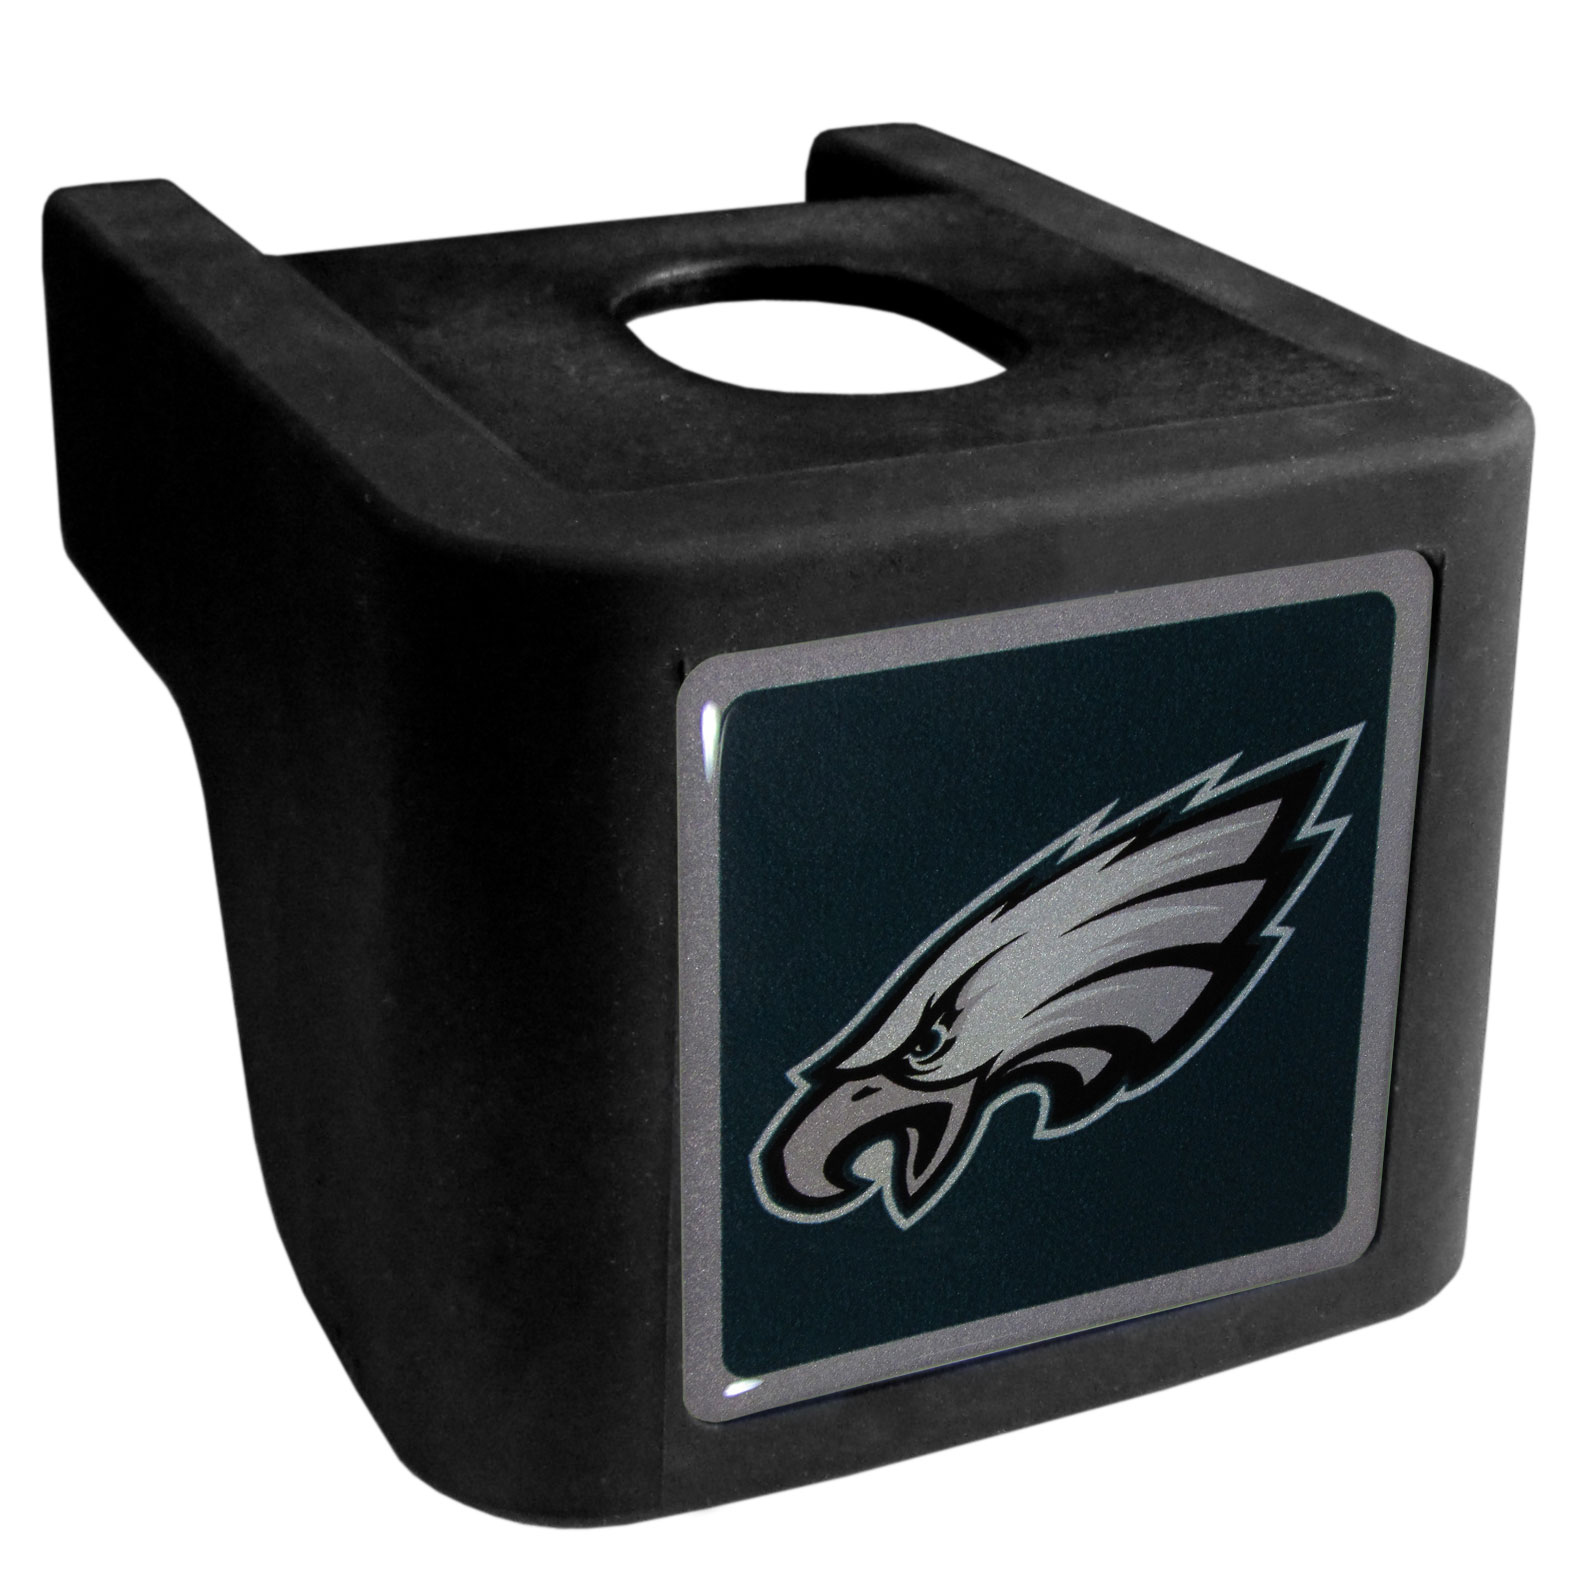 Philadelphia Eagles Shin Shield Hitch Cover - This unique hitch cover features a large Philadelphia Eagles logo. If you have ever hooked up a trailer or boat your have probably smashed your shins on the ball hitch a few times. This revolutionary shin shield hitch cover provides your much abused shins with the protection they deserve! The tough rubber hitch is rated to work with Class V hitch receivers hauling up to 17,000 gross trailer weight and 1,700 tongue weight allowing you to leave it on while hauling.